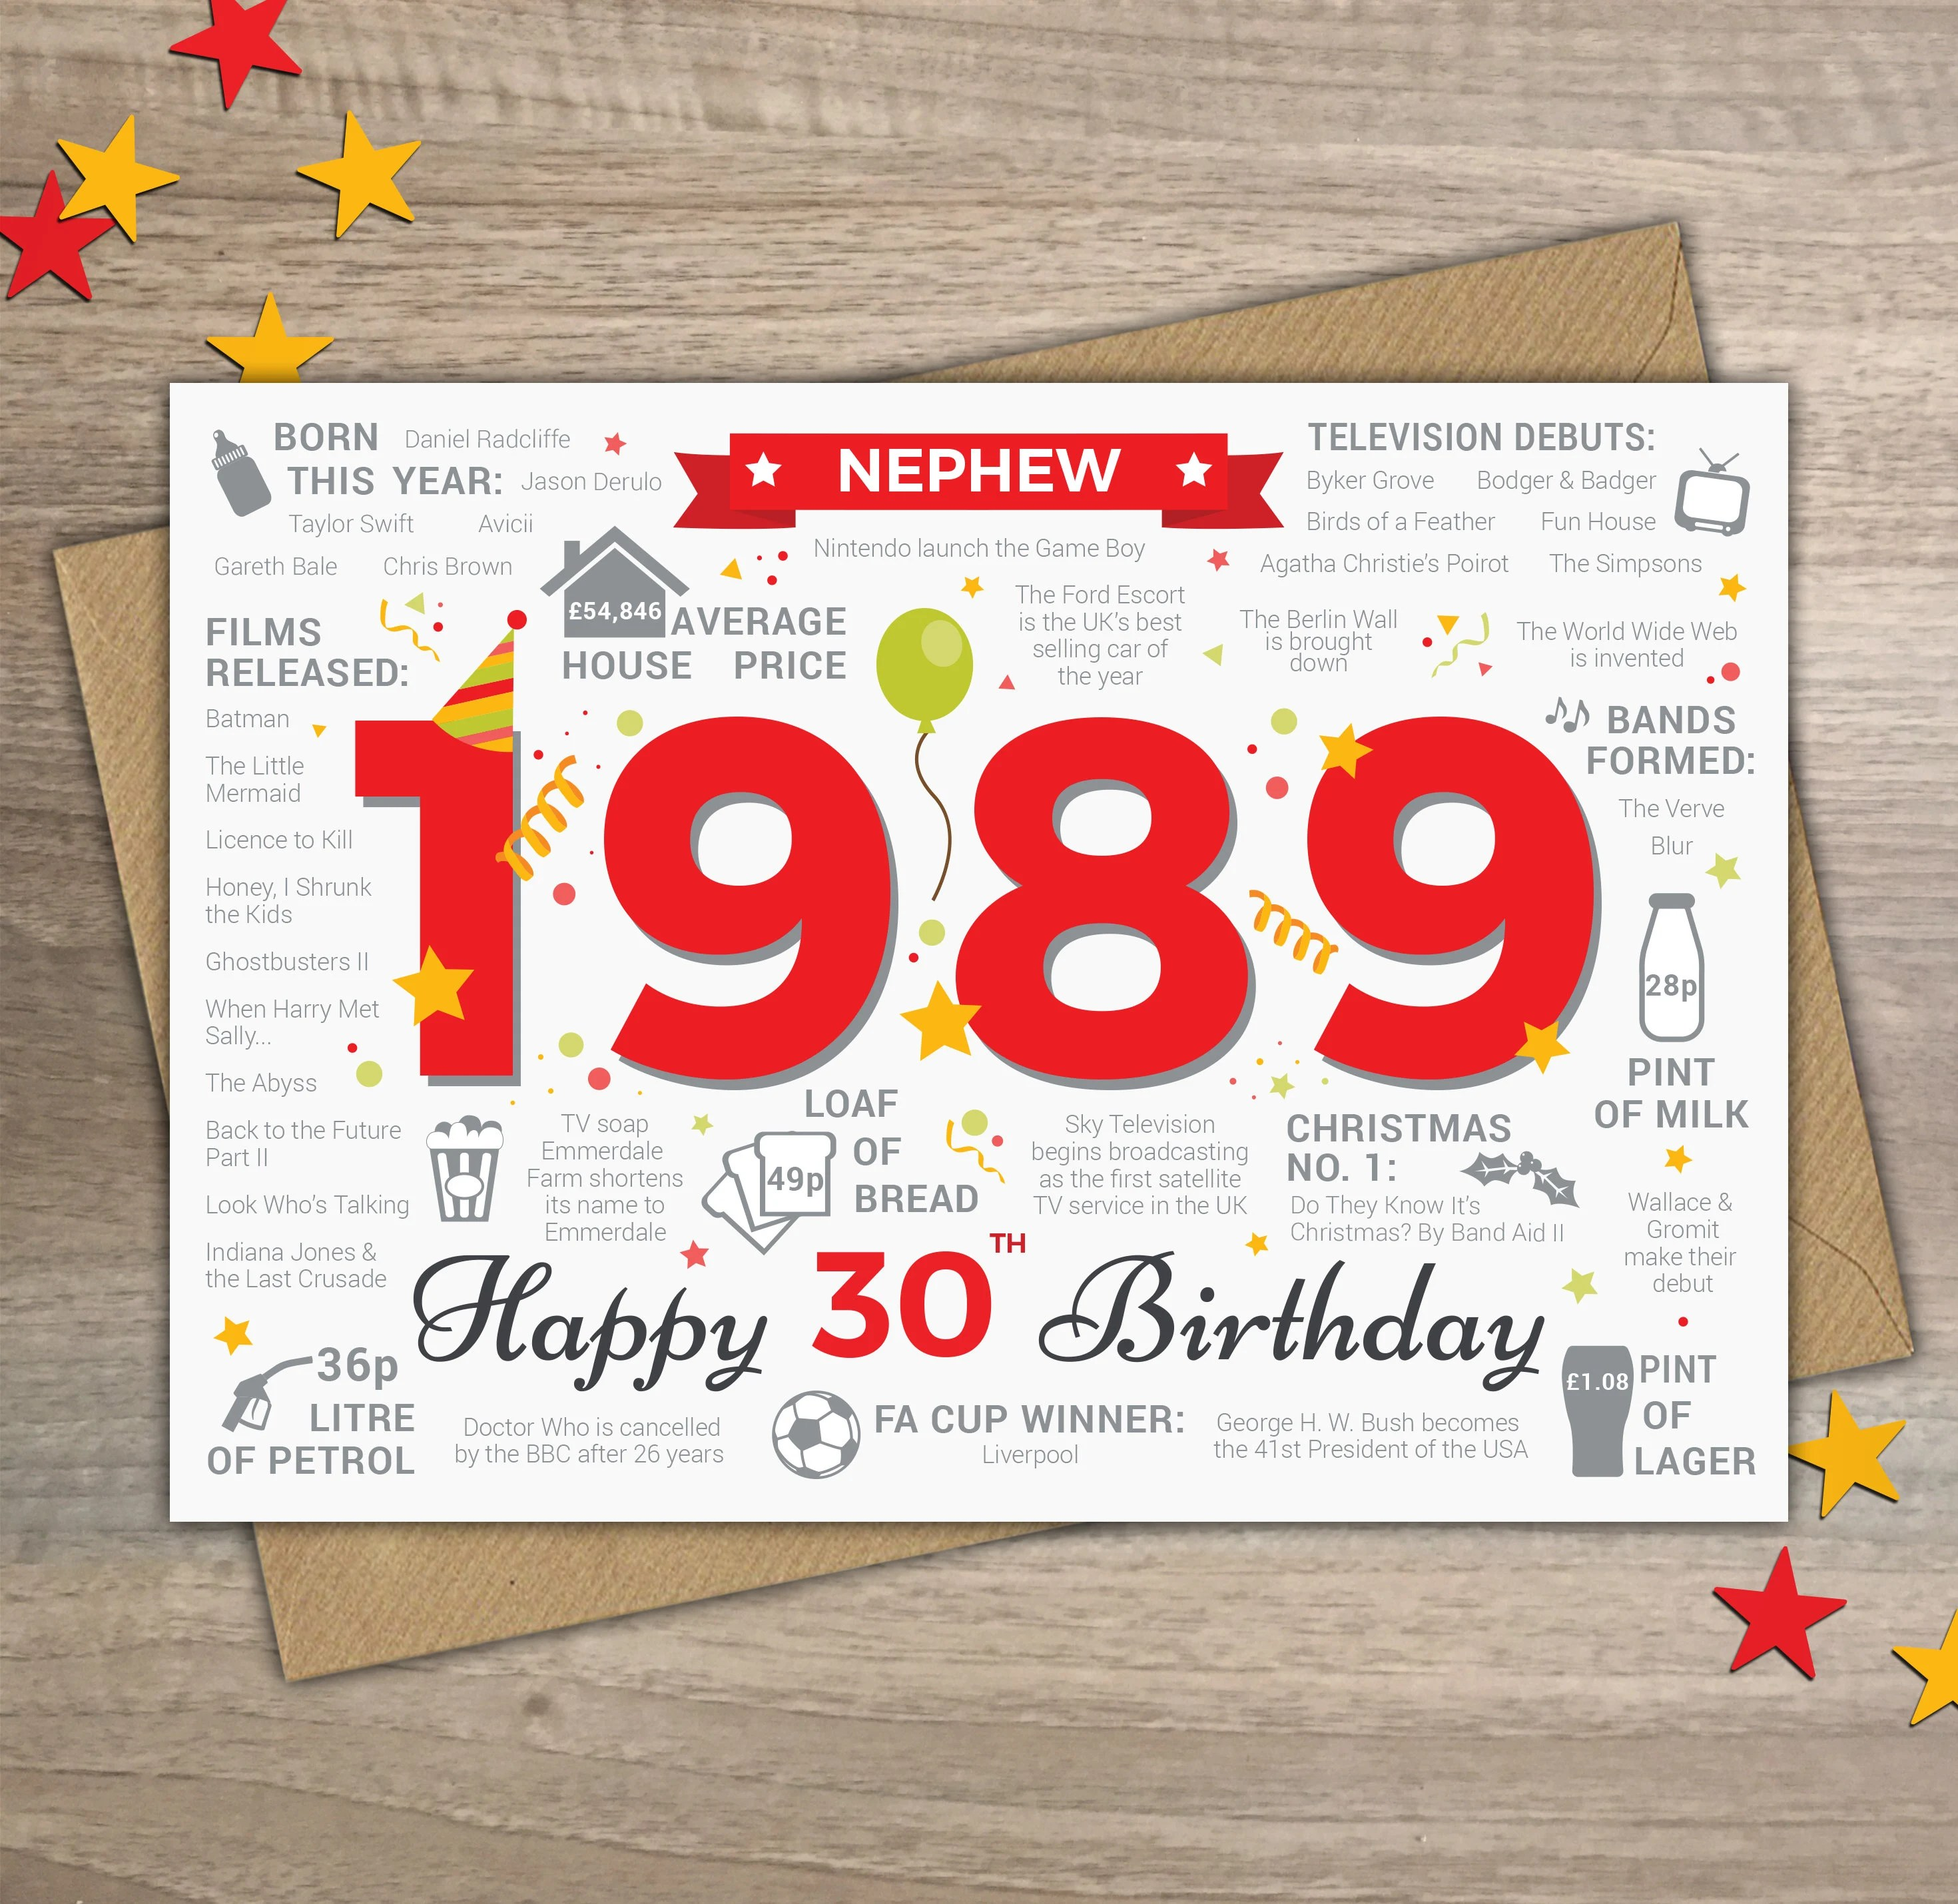 Happy Casa Tappeto Cucina Happy 30th Birthday Nephew Greetings Card Born In 1989 Year Of Birth Facts Memories Red